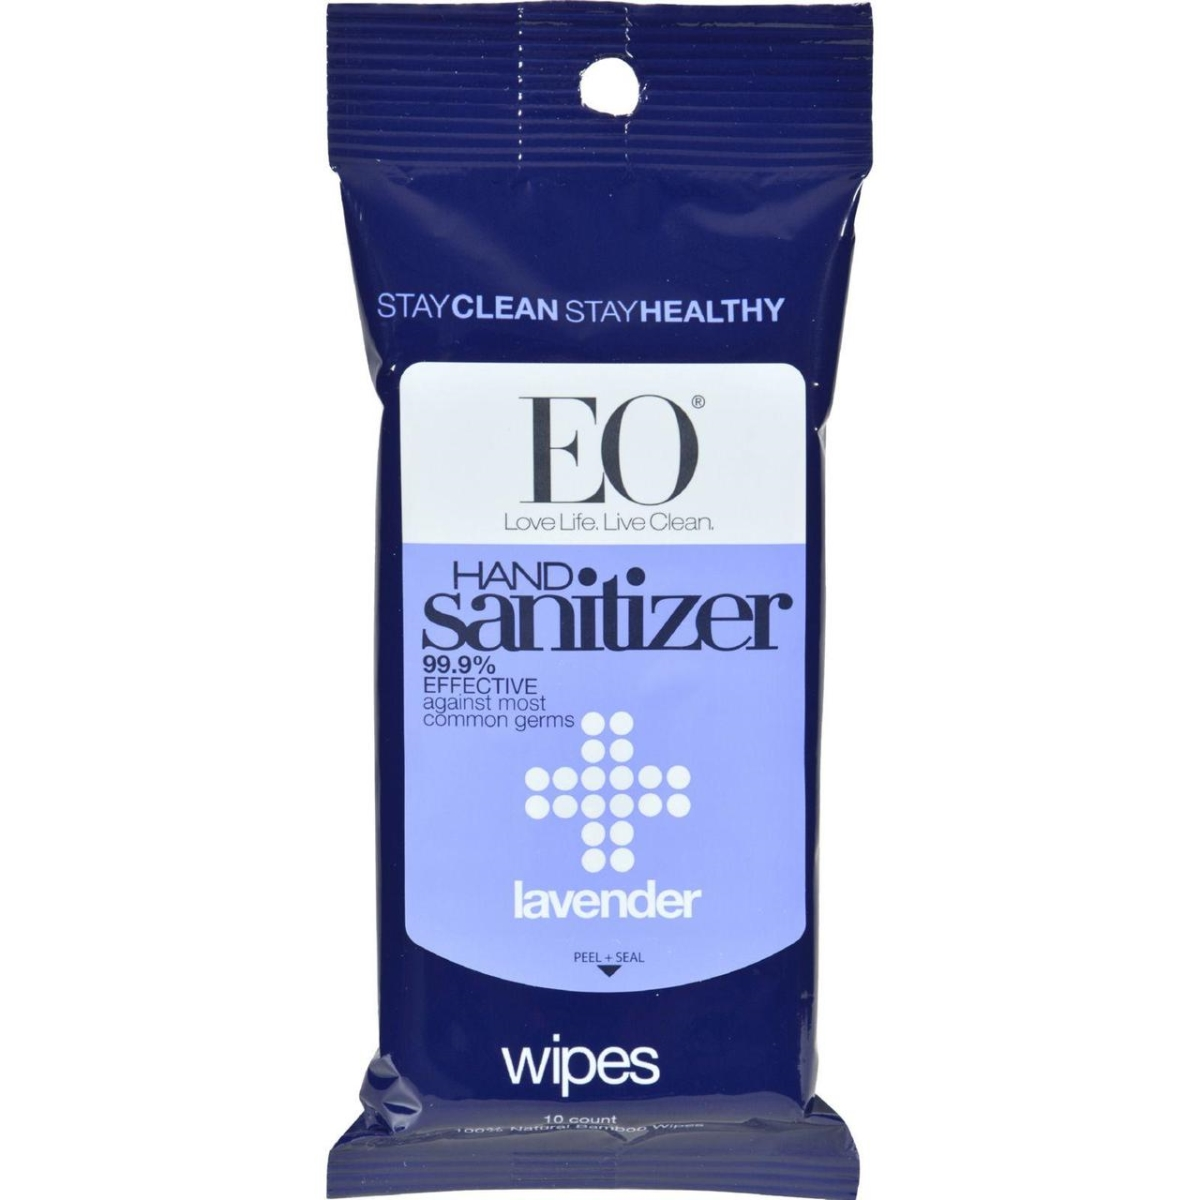 Eo Products HG0577320 Hand Sanitizer Wipes Display Center Lavender - Case of 6 Pack of 10